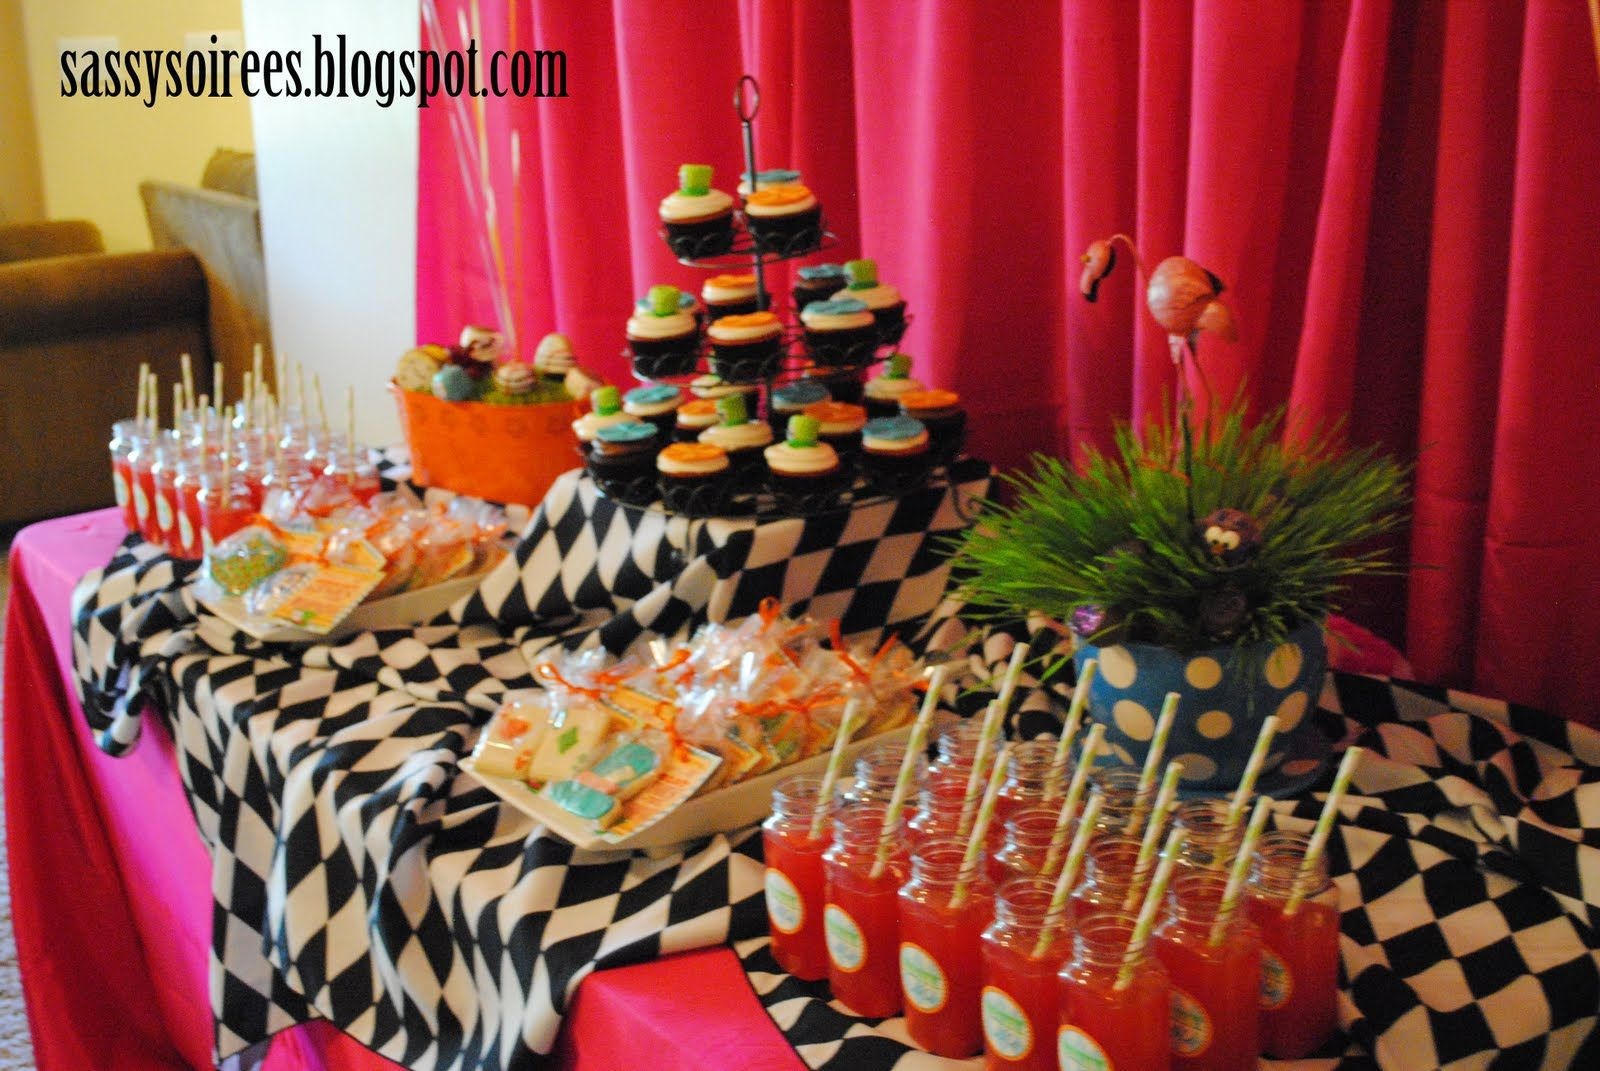 Mad hatter tea party decoration ideas - Birthday Party Ideas